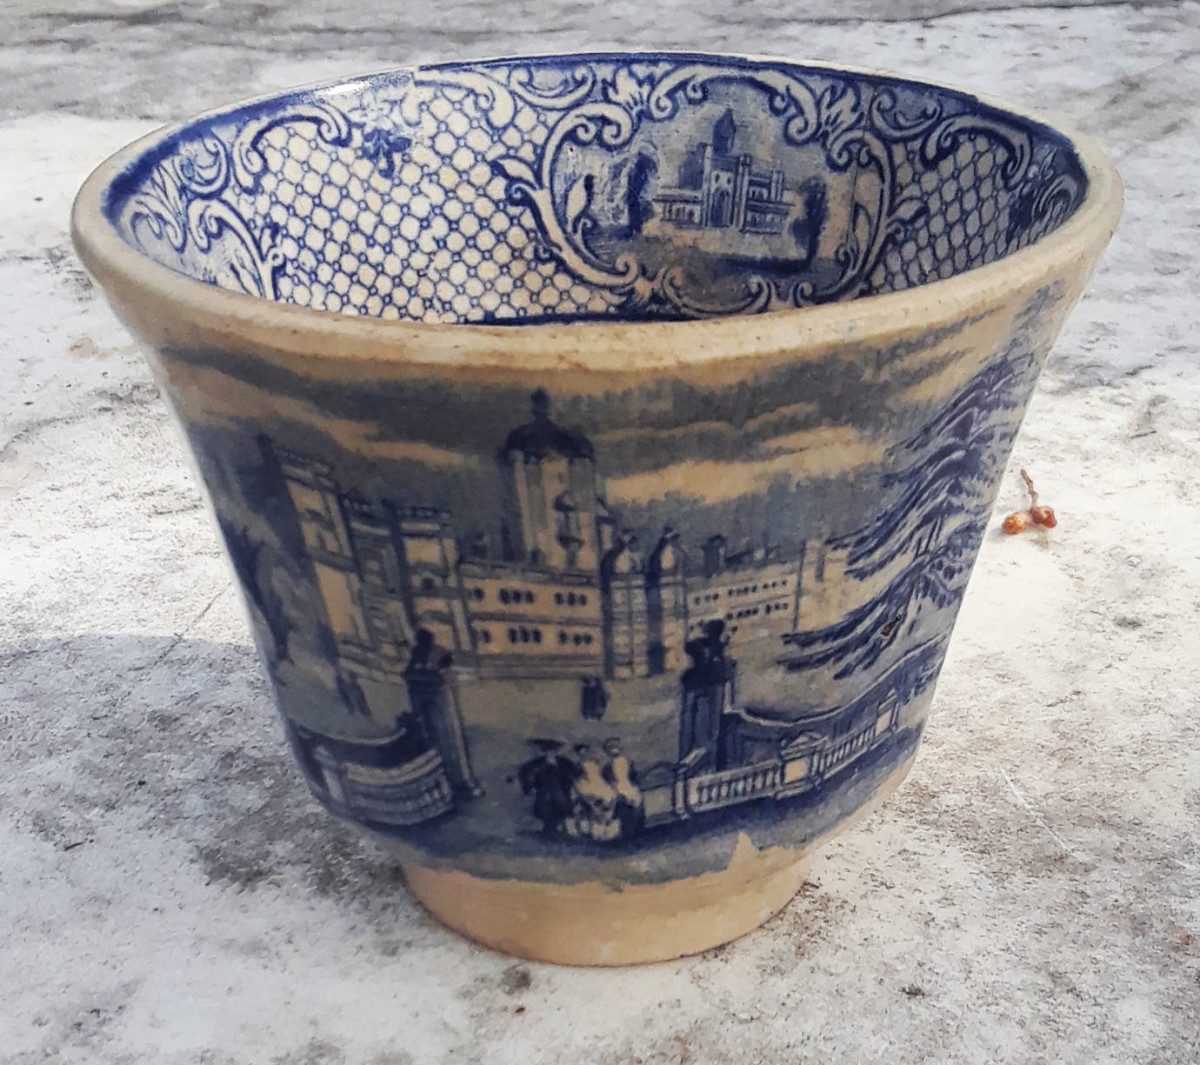 Cup with no handles - Ridgway's University Pattern circa 1840s